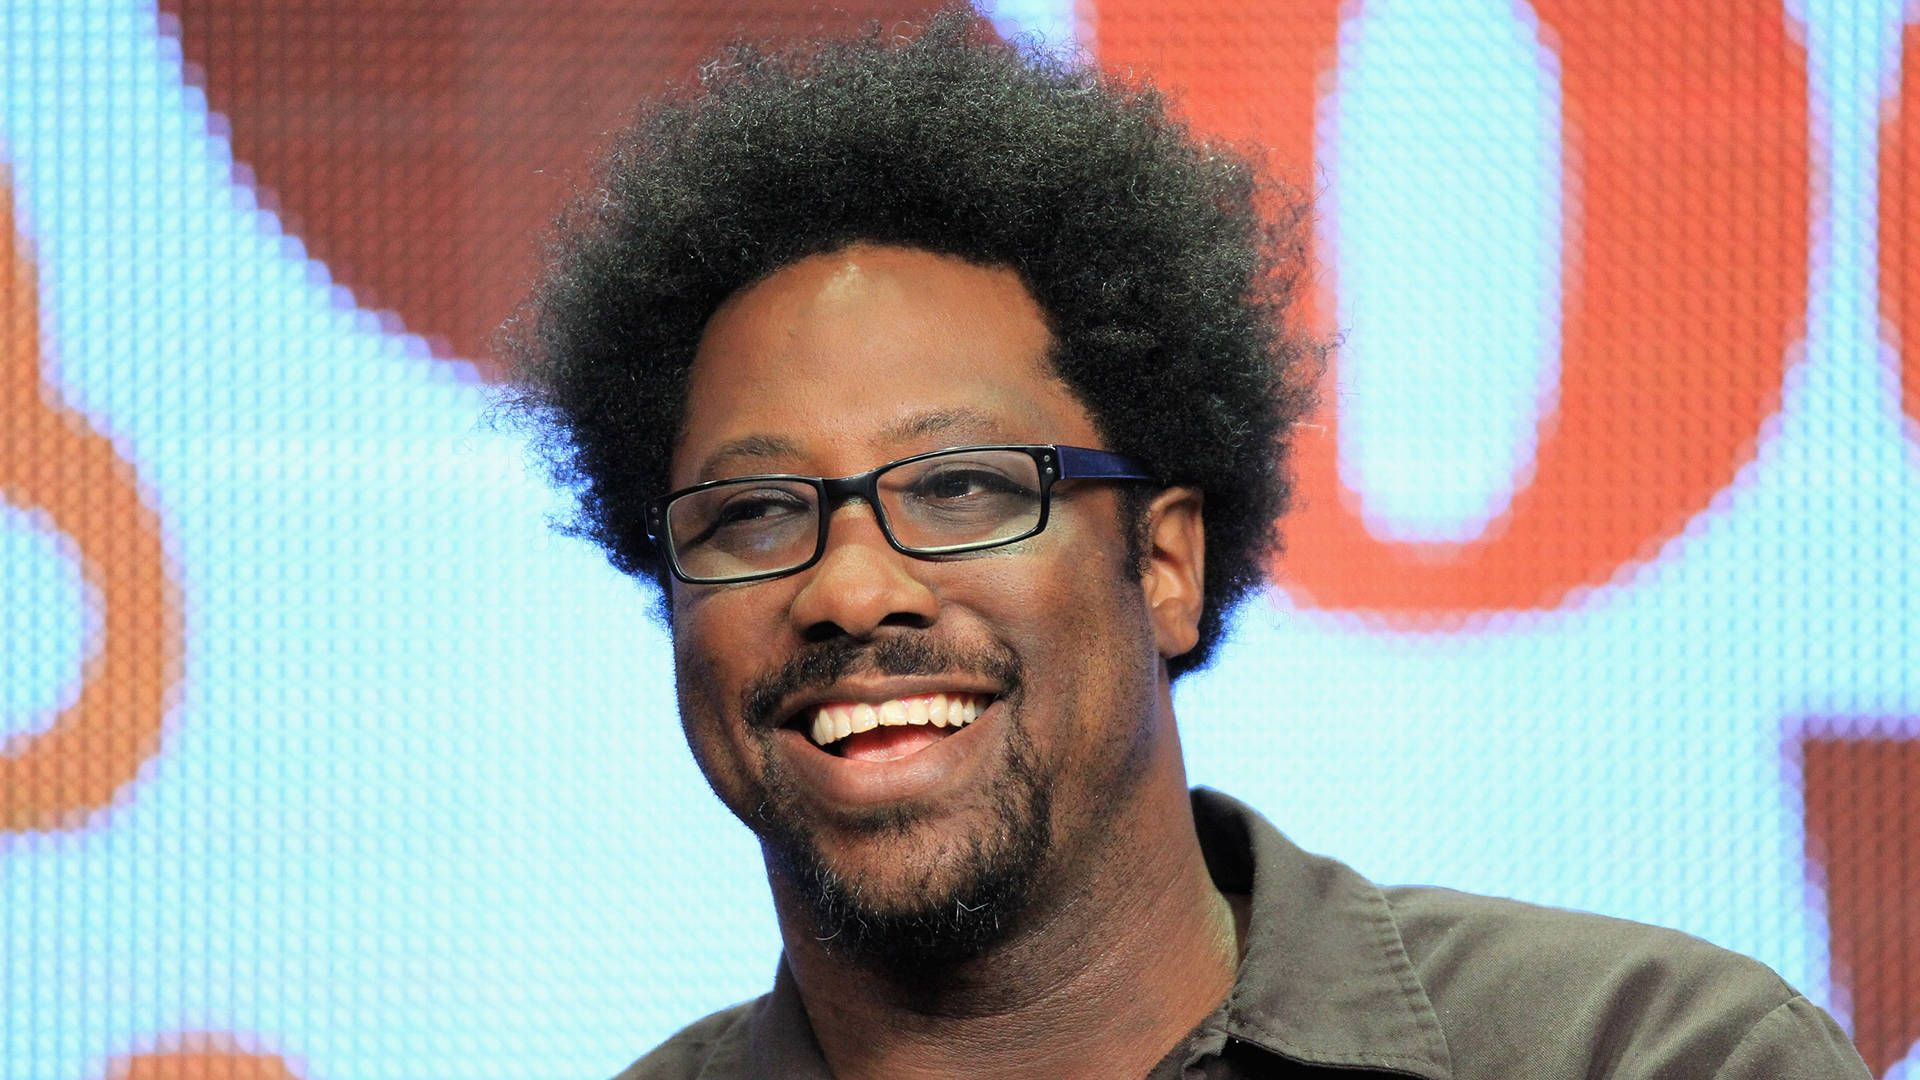 W. Kamau Bell speaks onstage at the 'Totally Biased with W. Kamau Bell' panel during the FX portion of the 2012 Summer TCA Tour on July 28, 2012 in Beverly Hills, California.   Frederick M. Brown/Getty Images